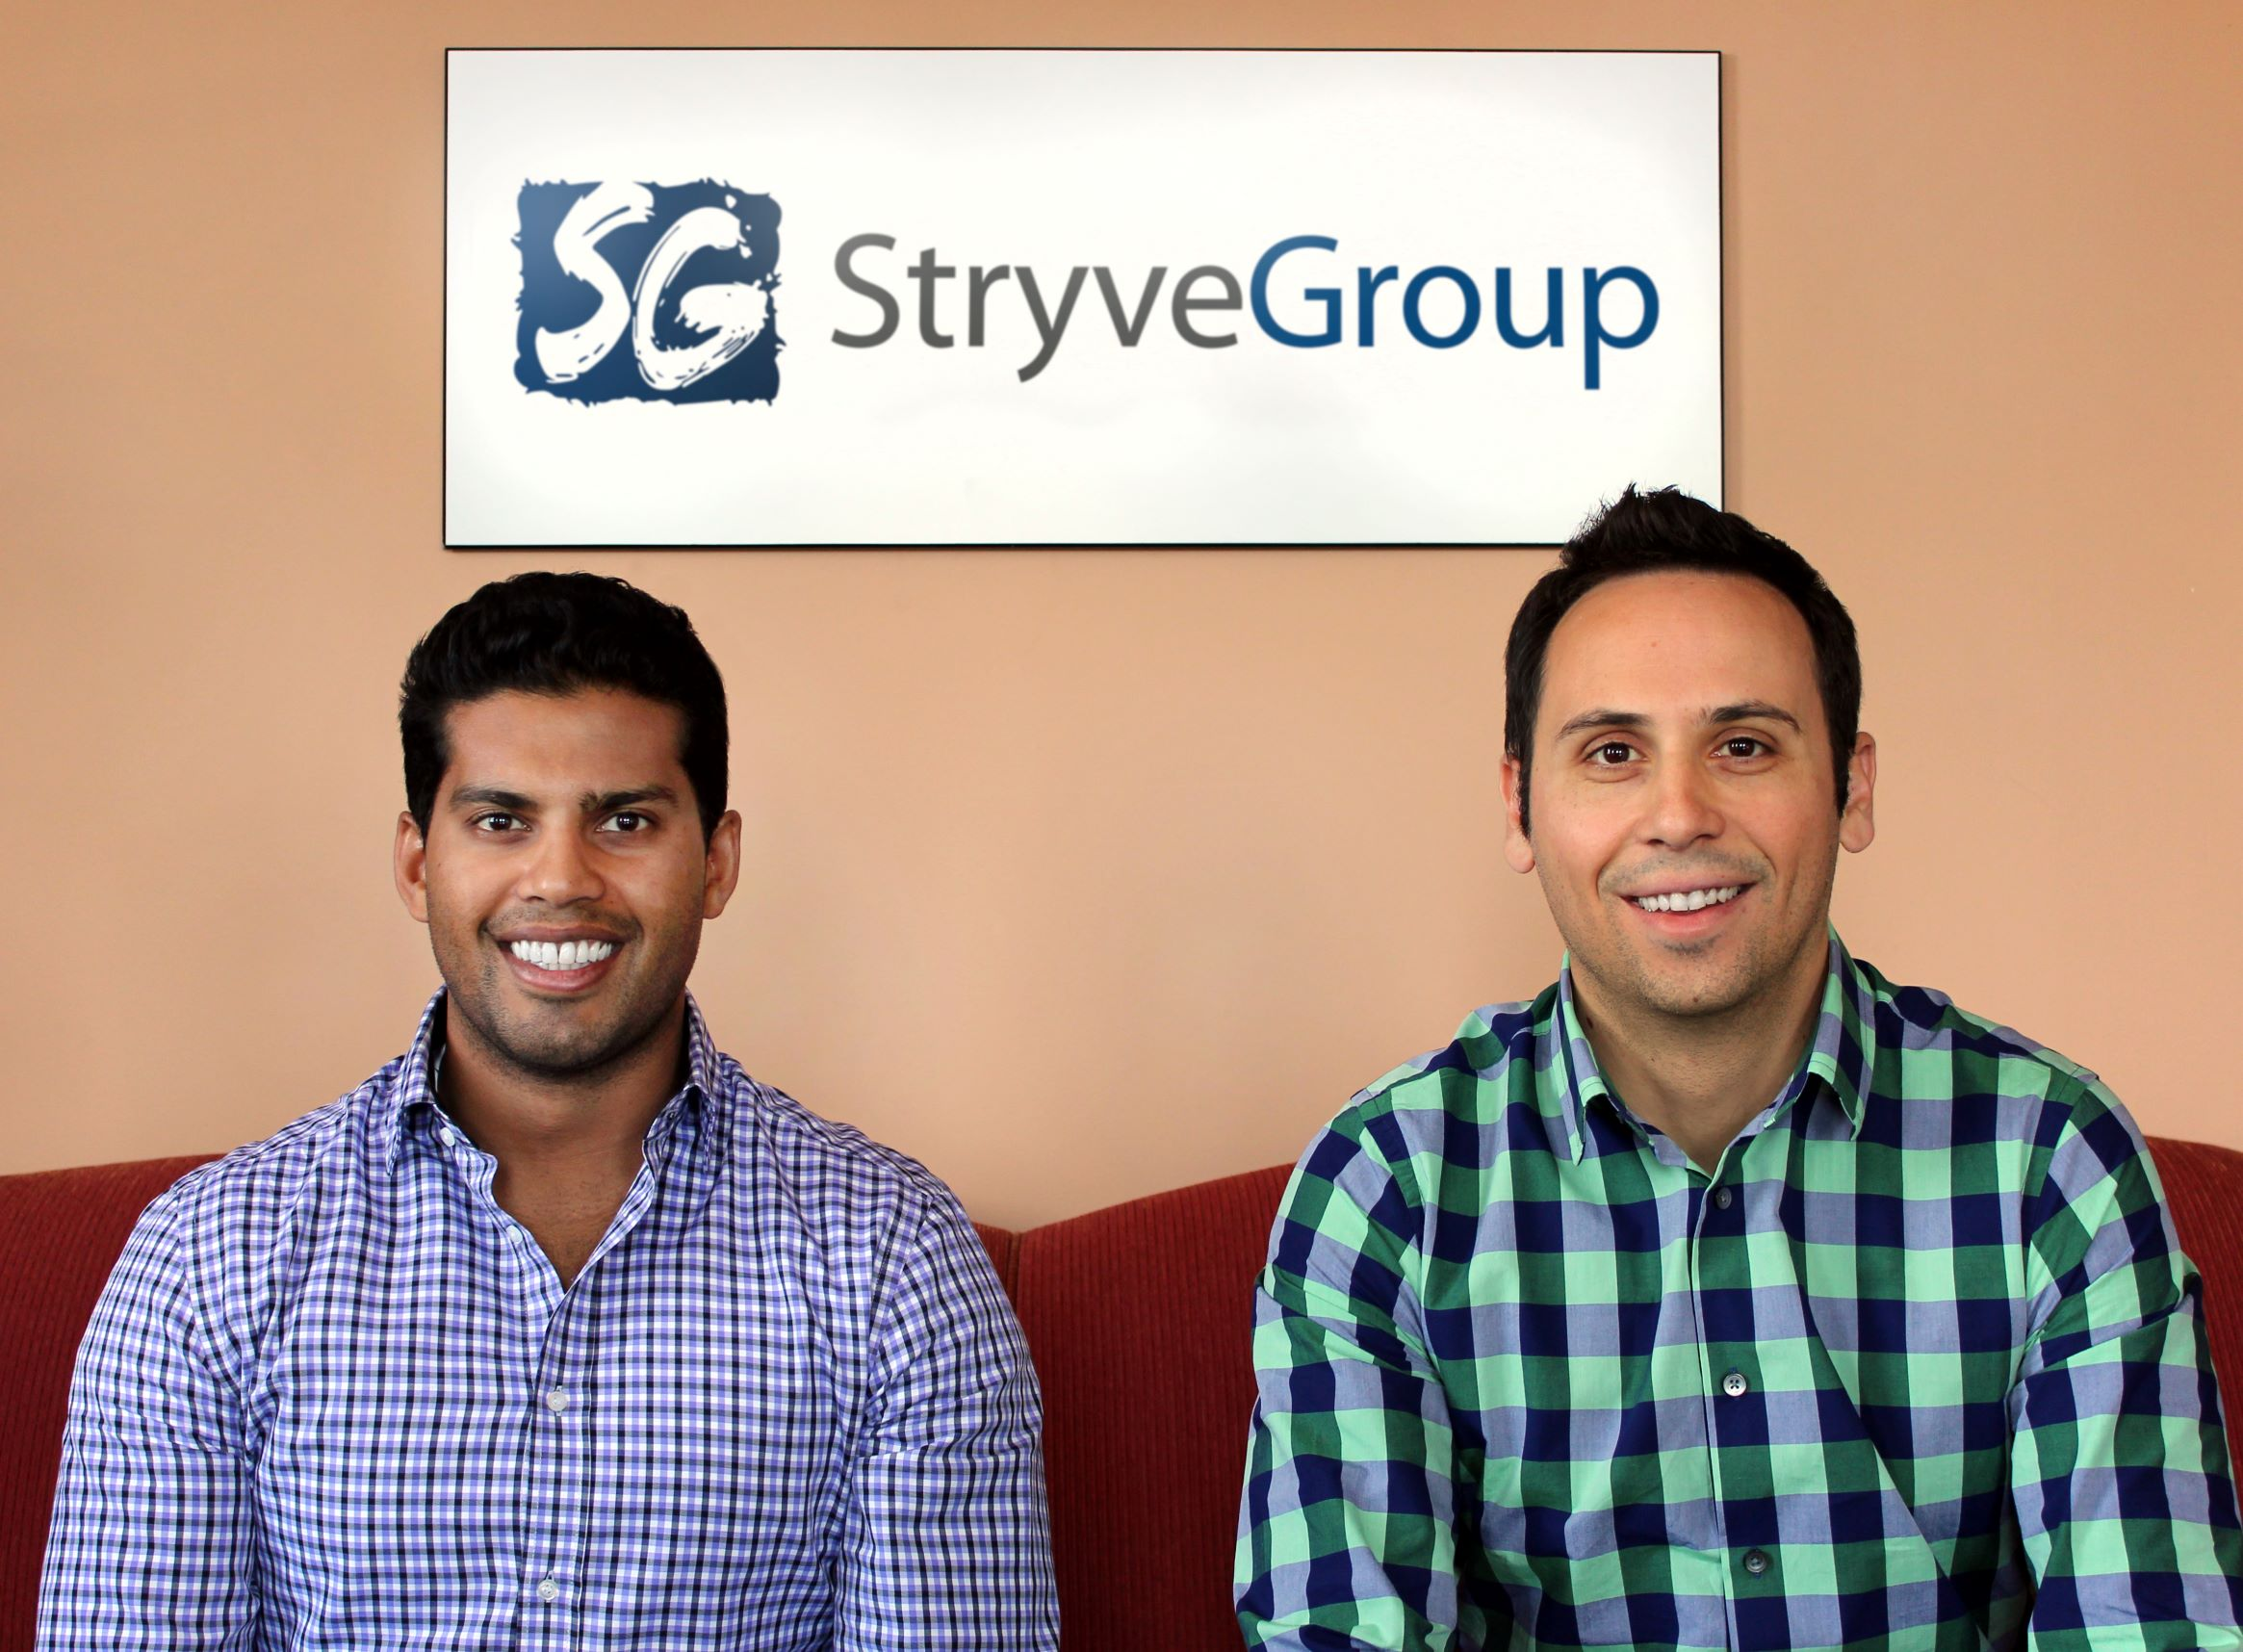 Stryve Group: 10 years ago